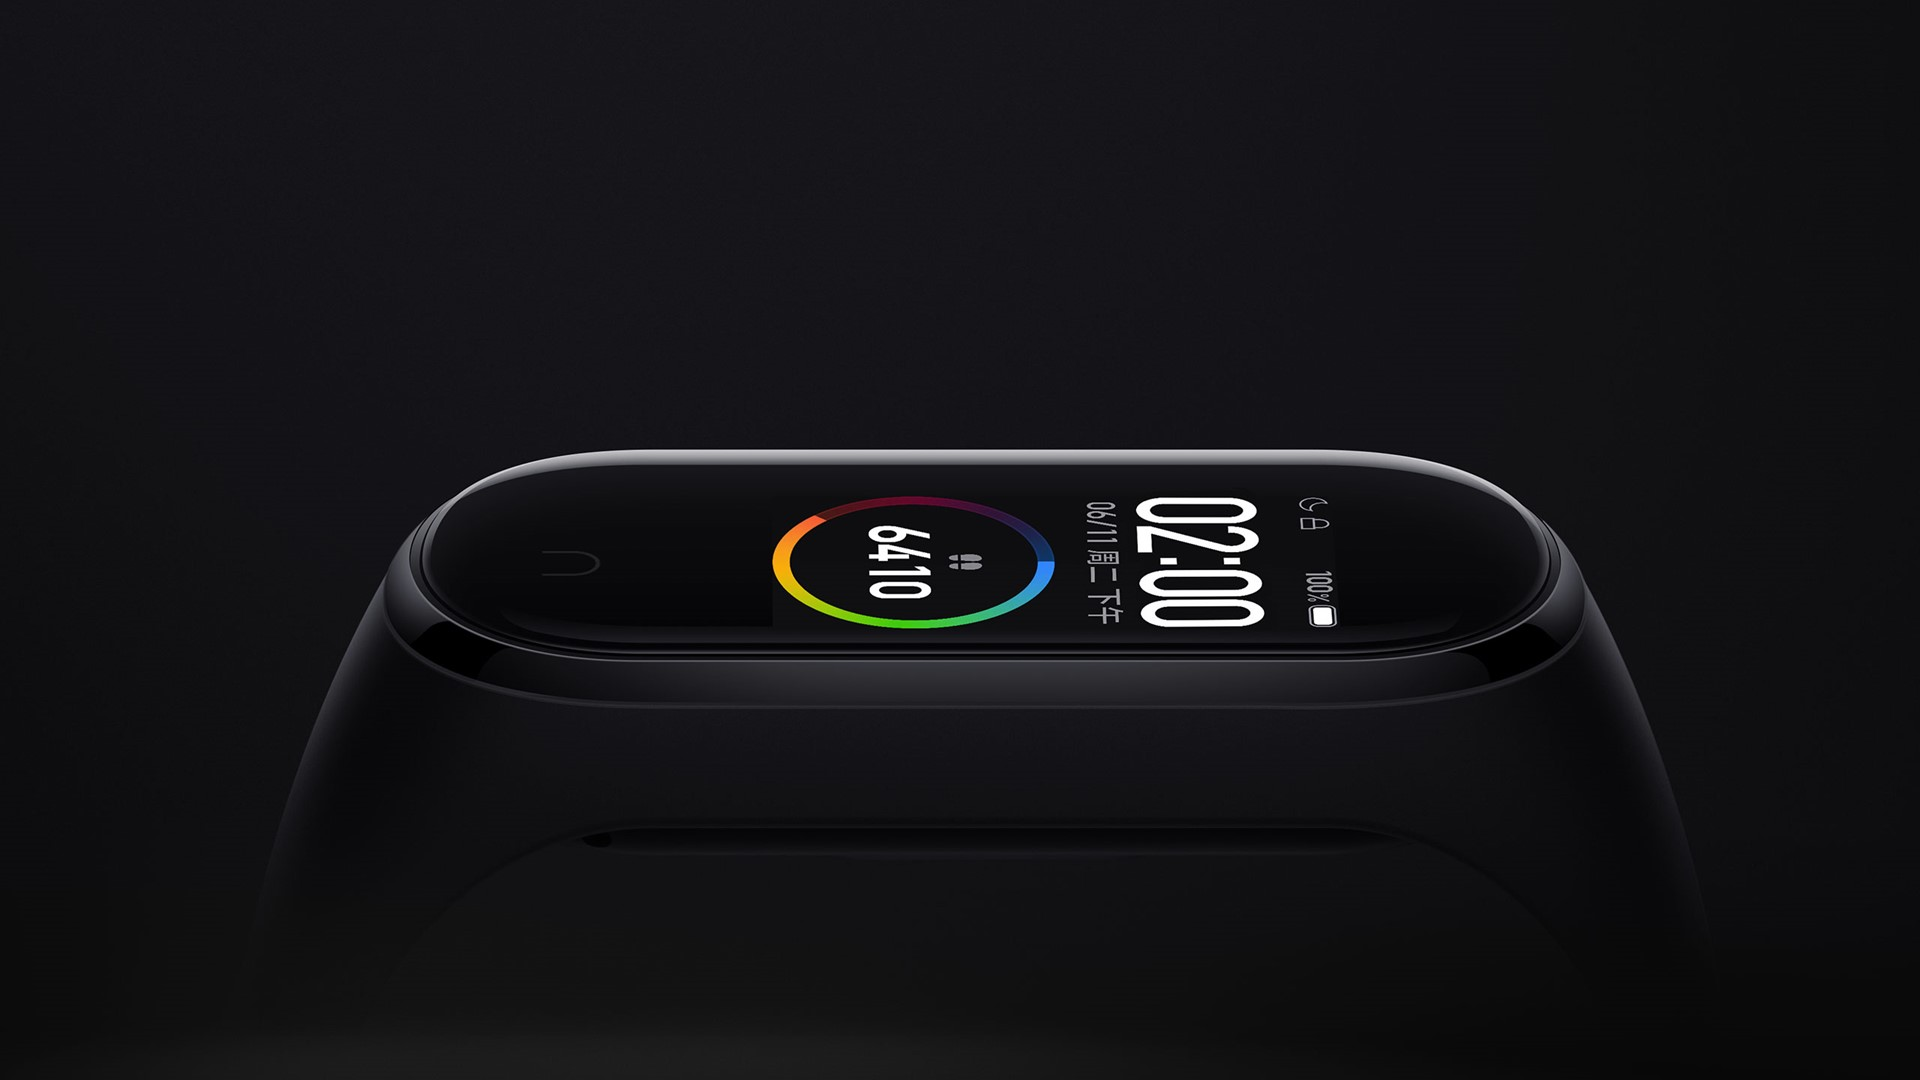 Xiaomi Mi Band 4 with AMOLED screen launched in China | TechRadar